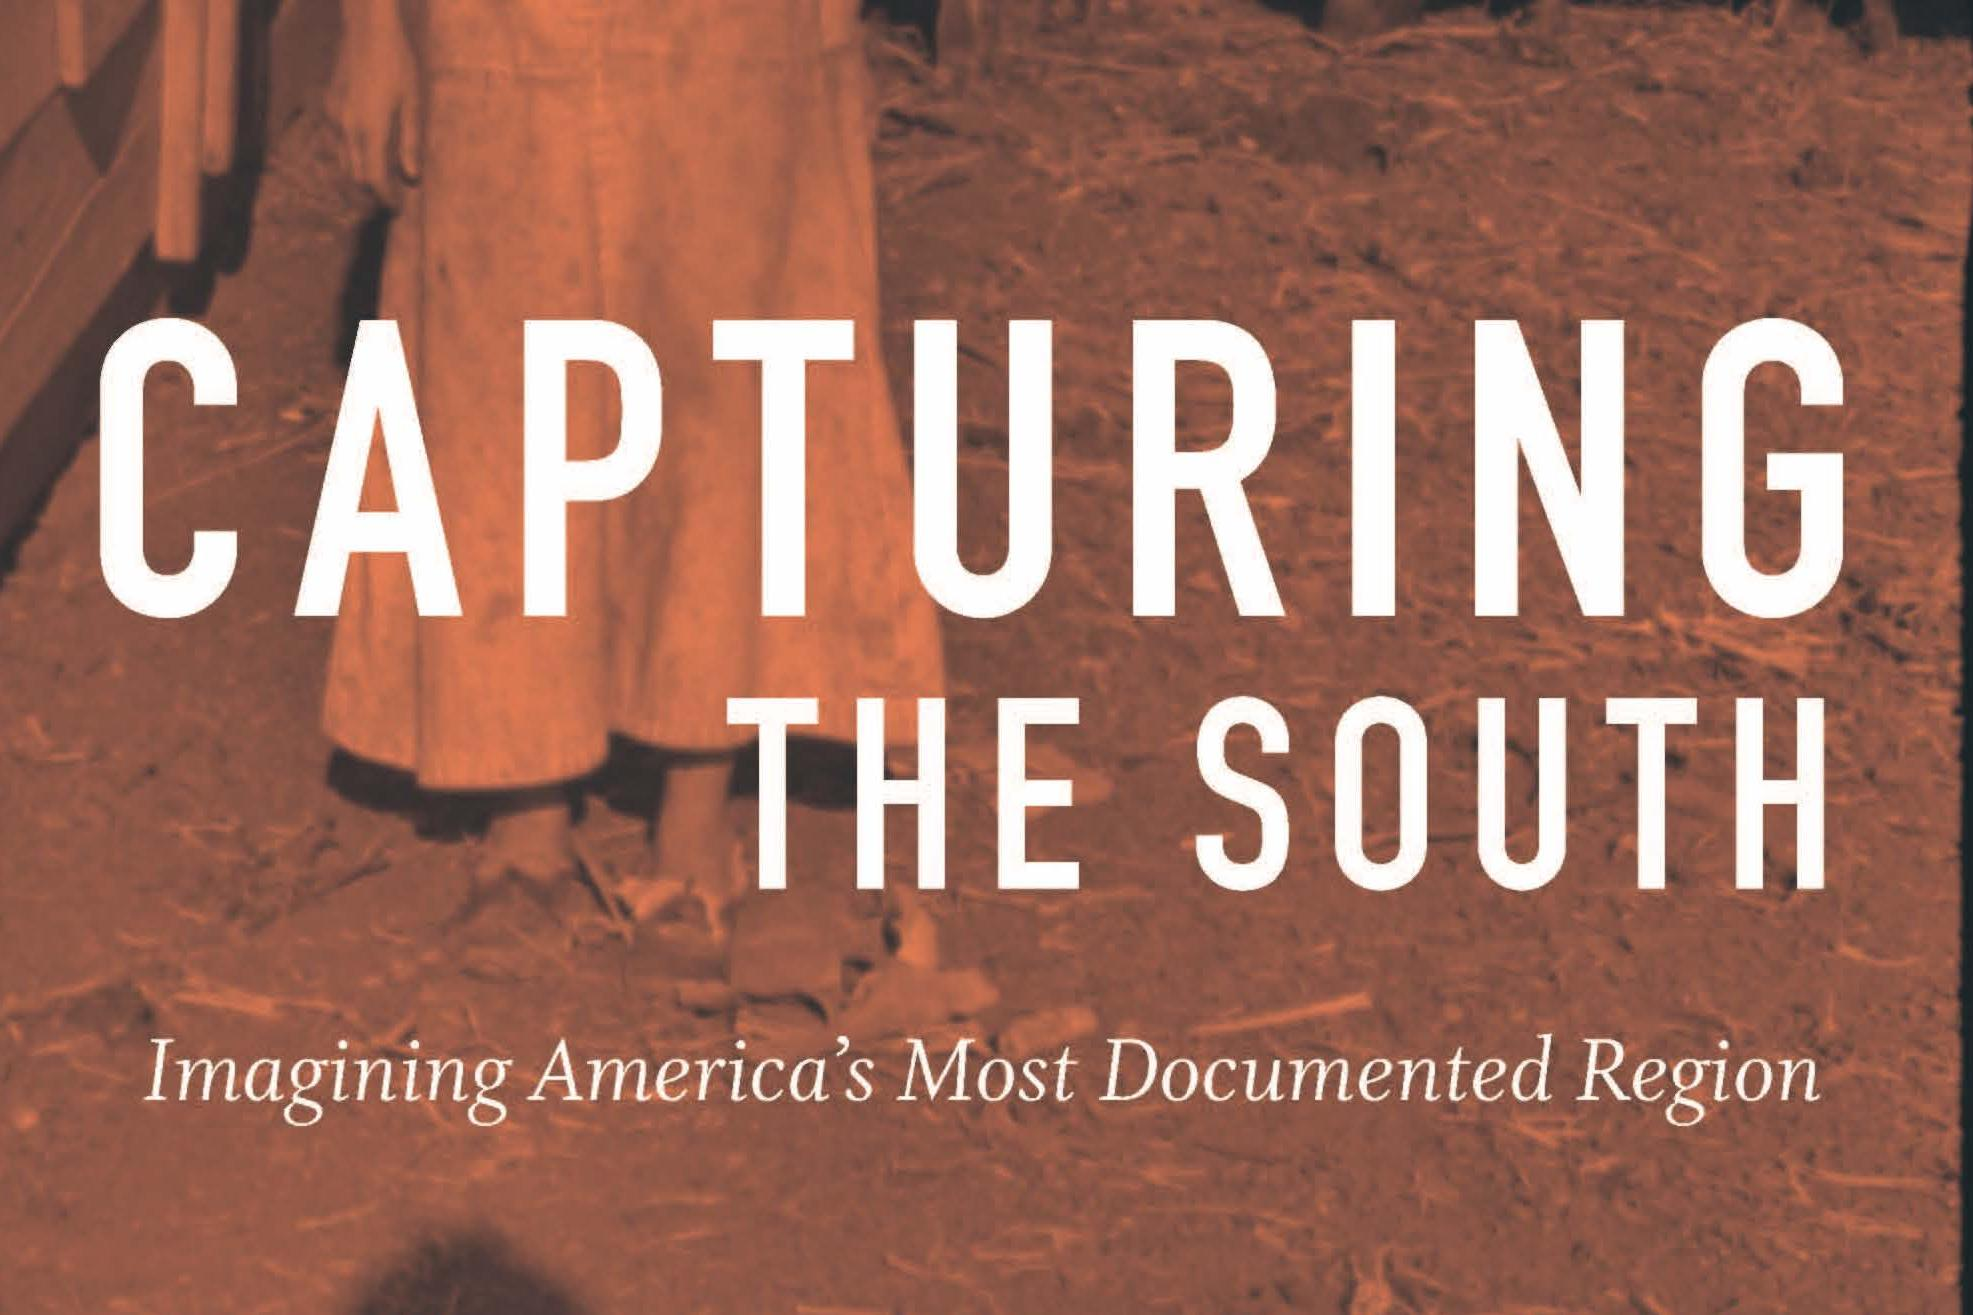 Capturing the South: Imagining America's Most Documented Region